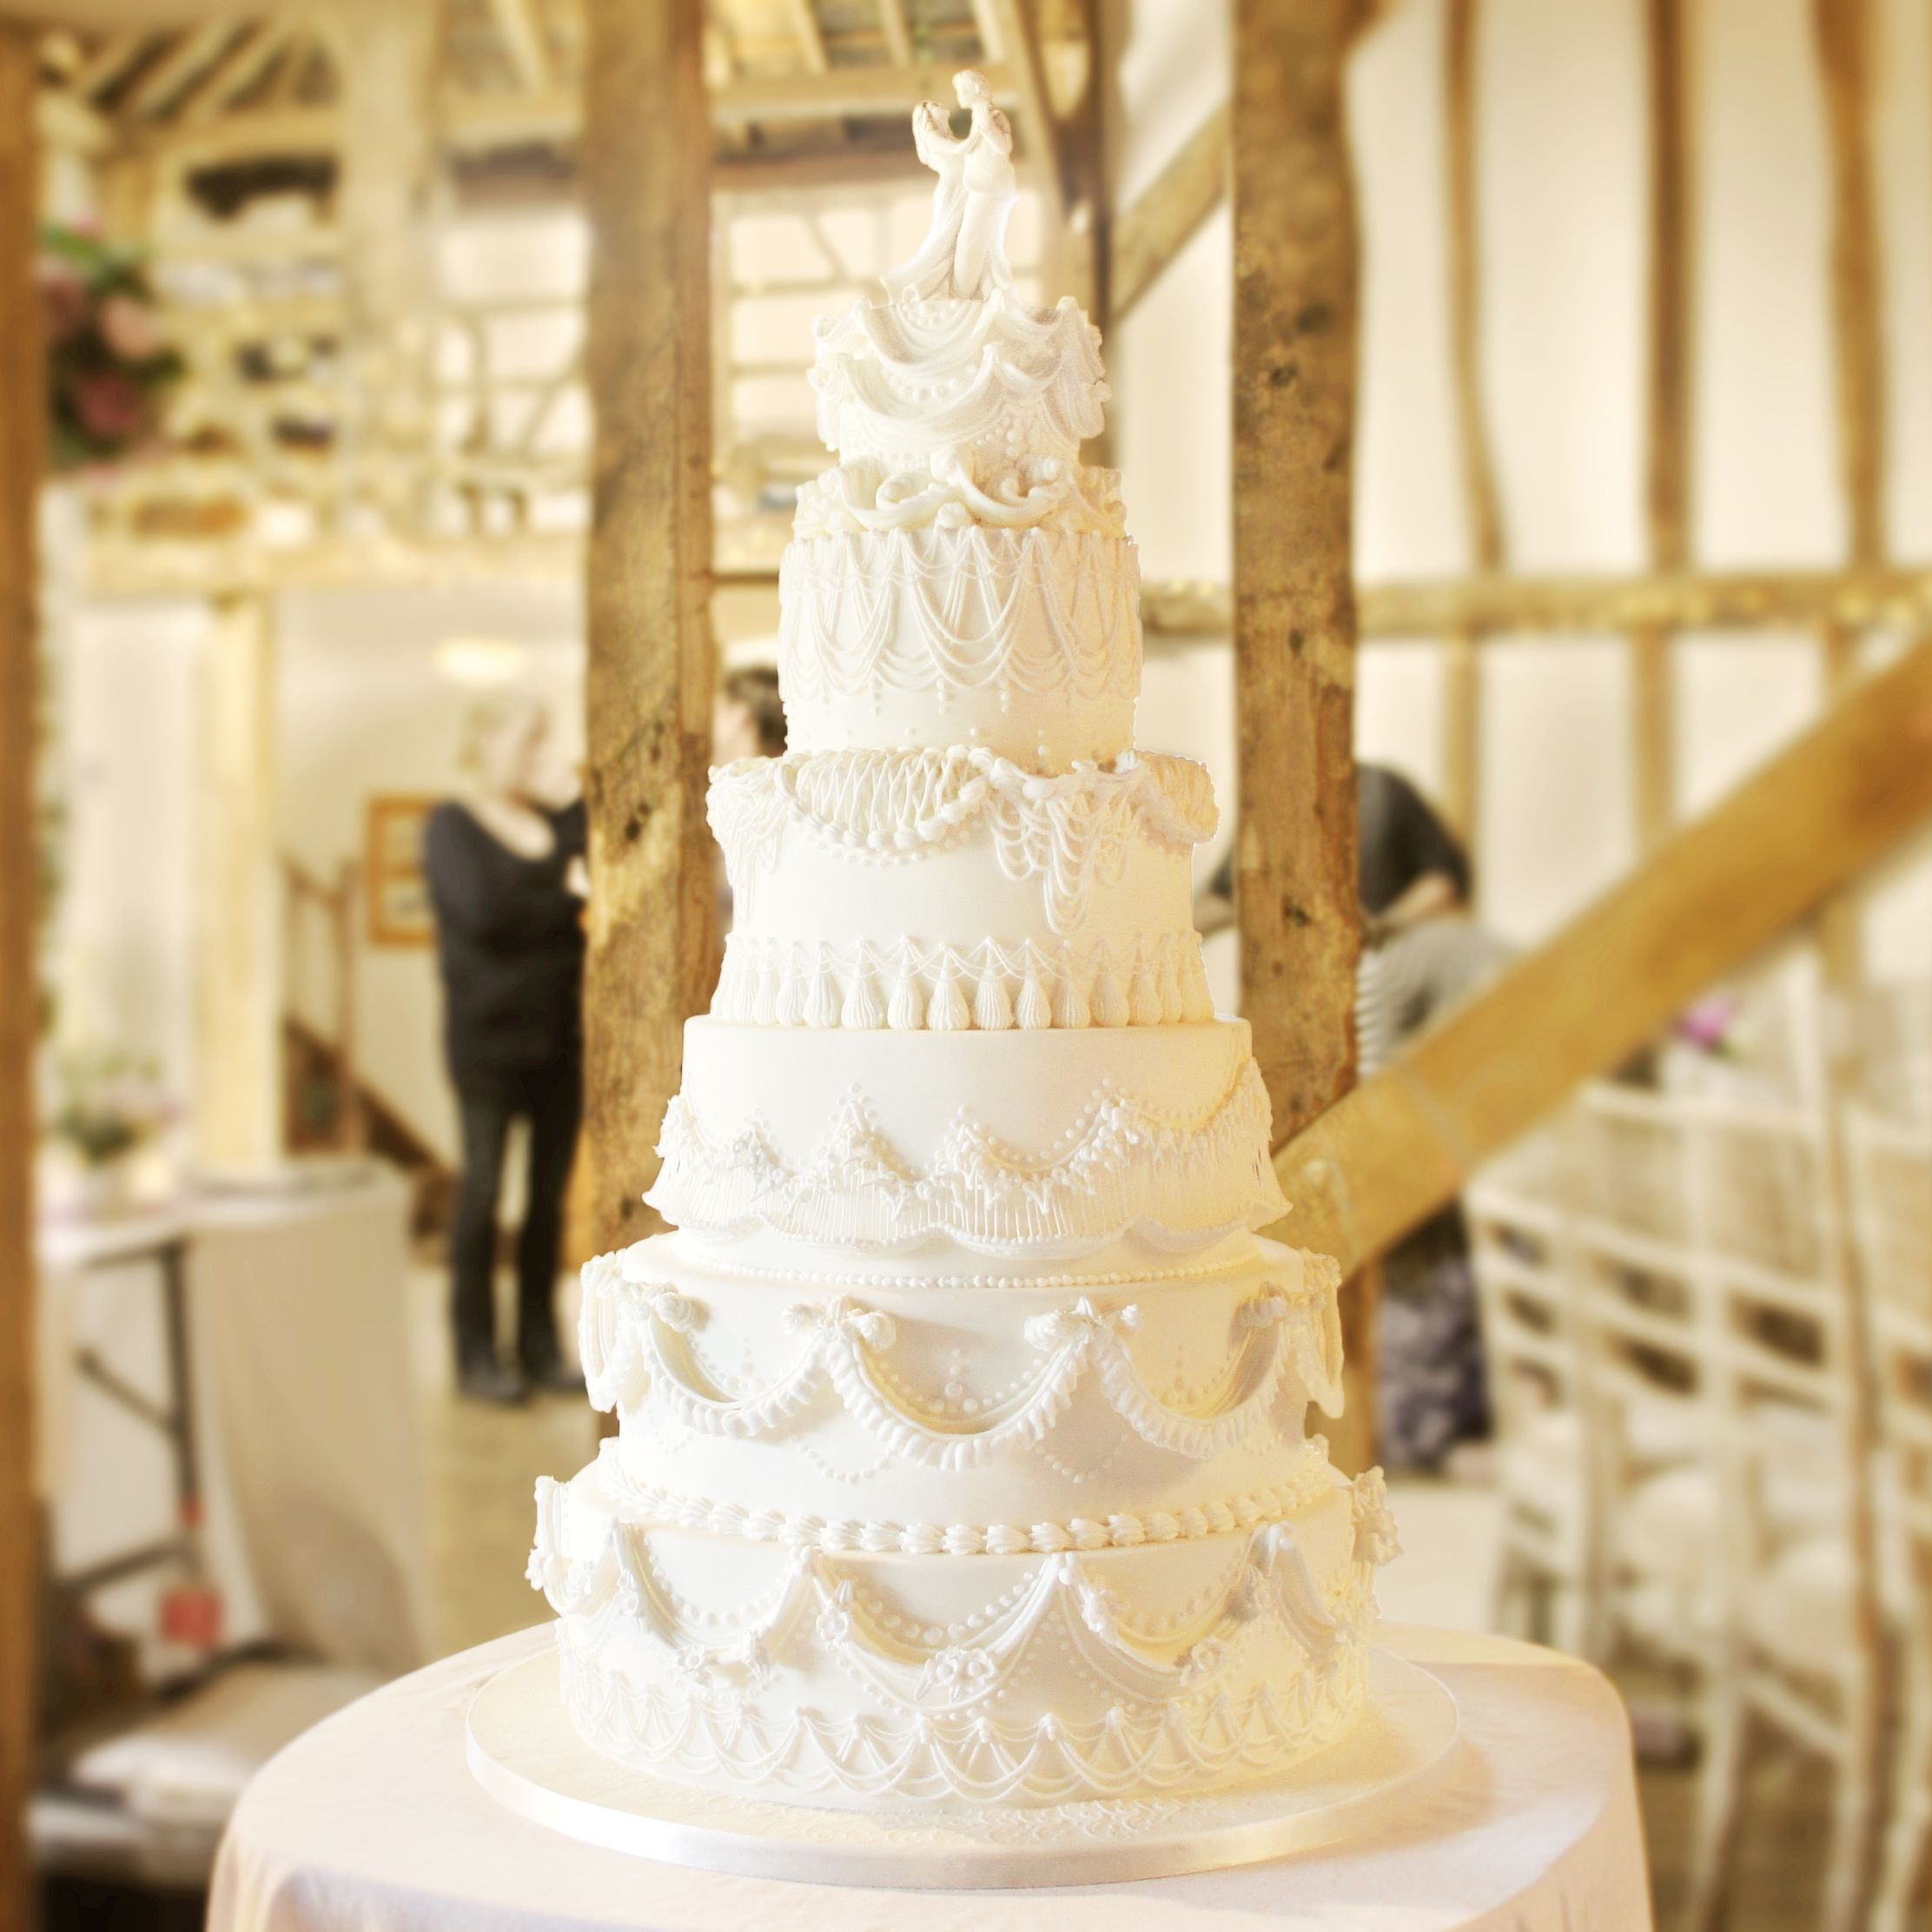 A Stacked Six Tier Wedding Cake Decorated With Variety Of Royal Icing Piping Techniques